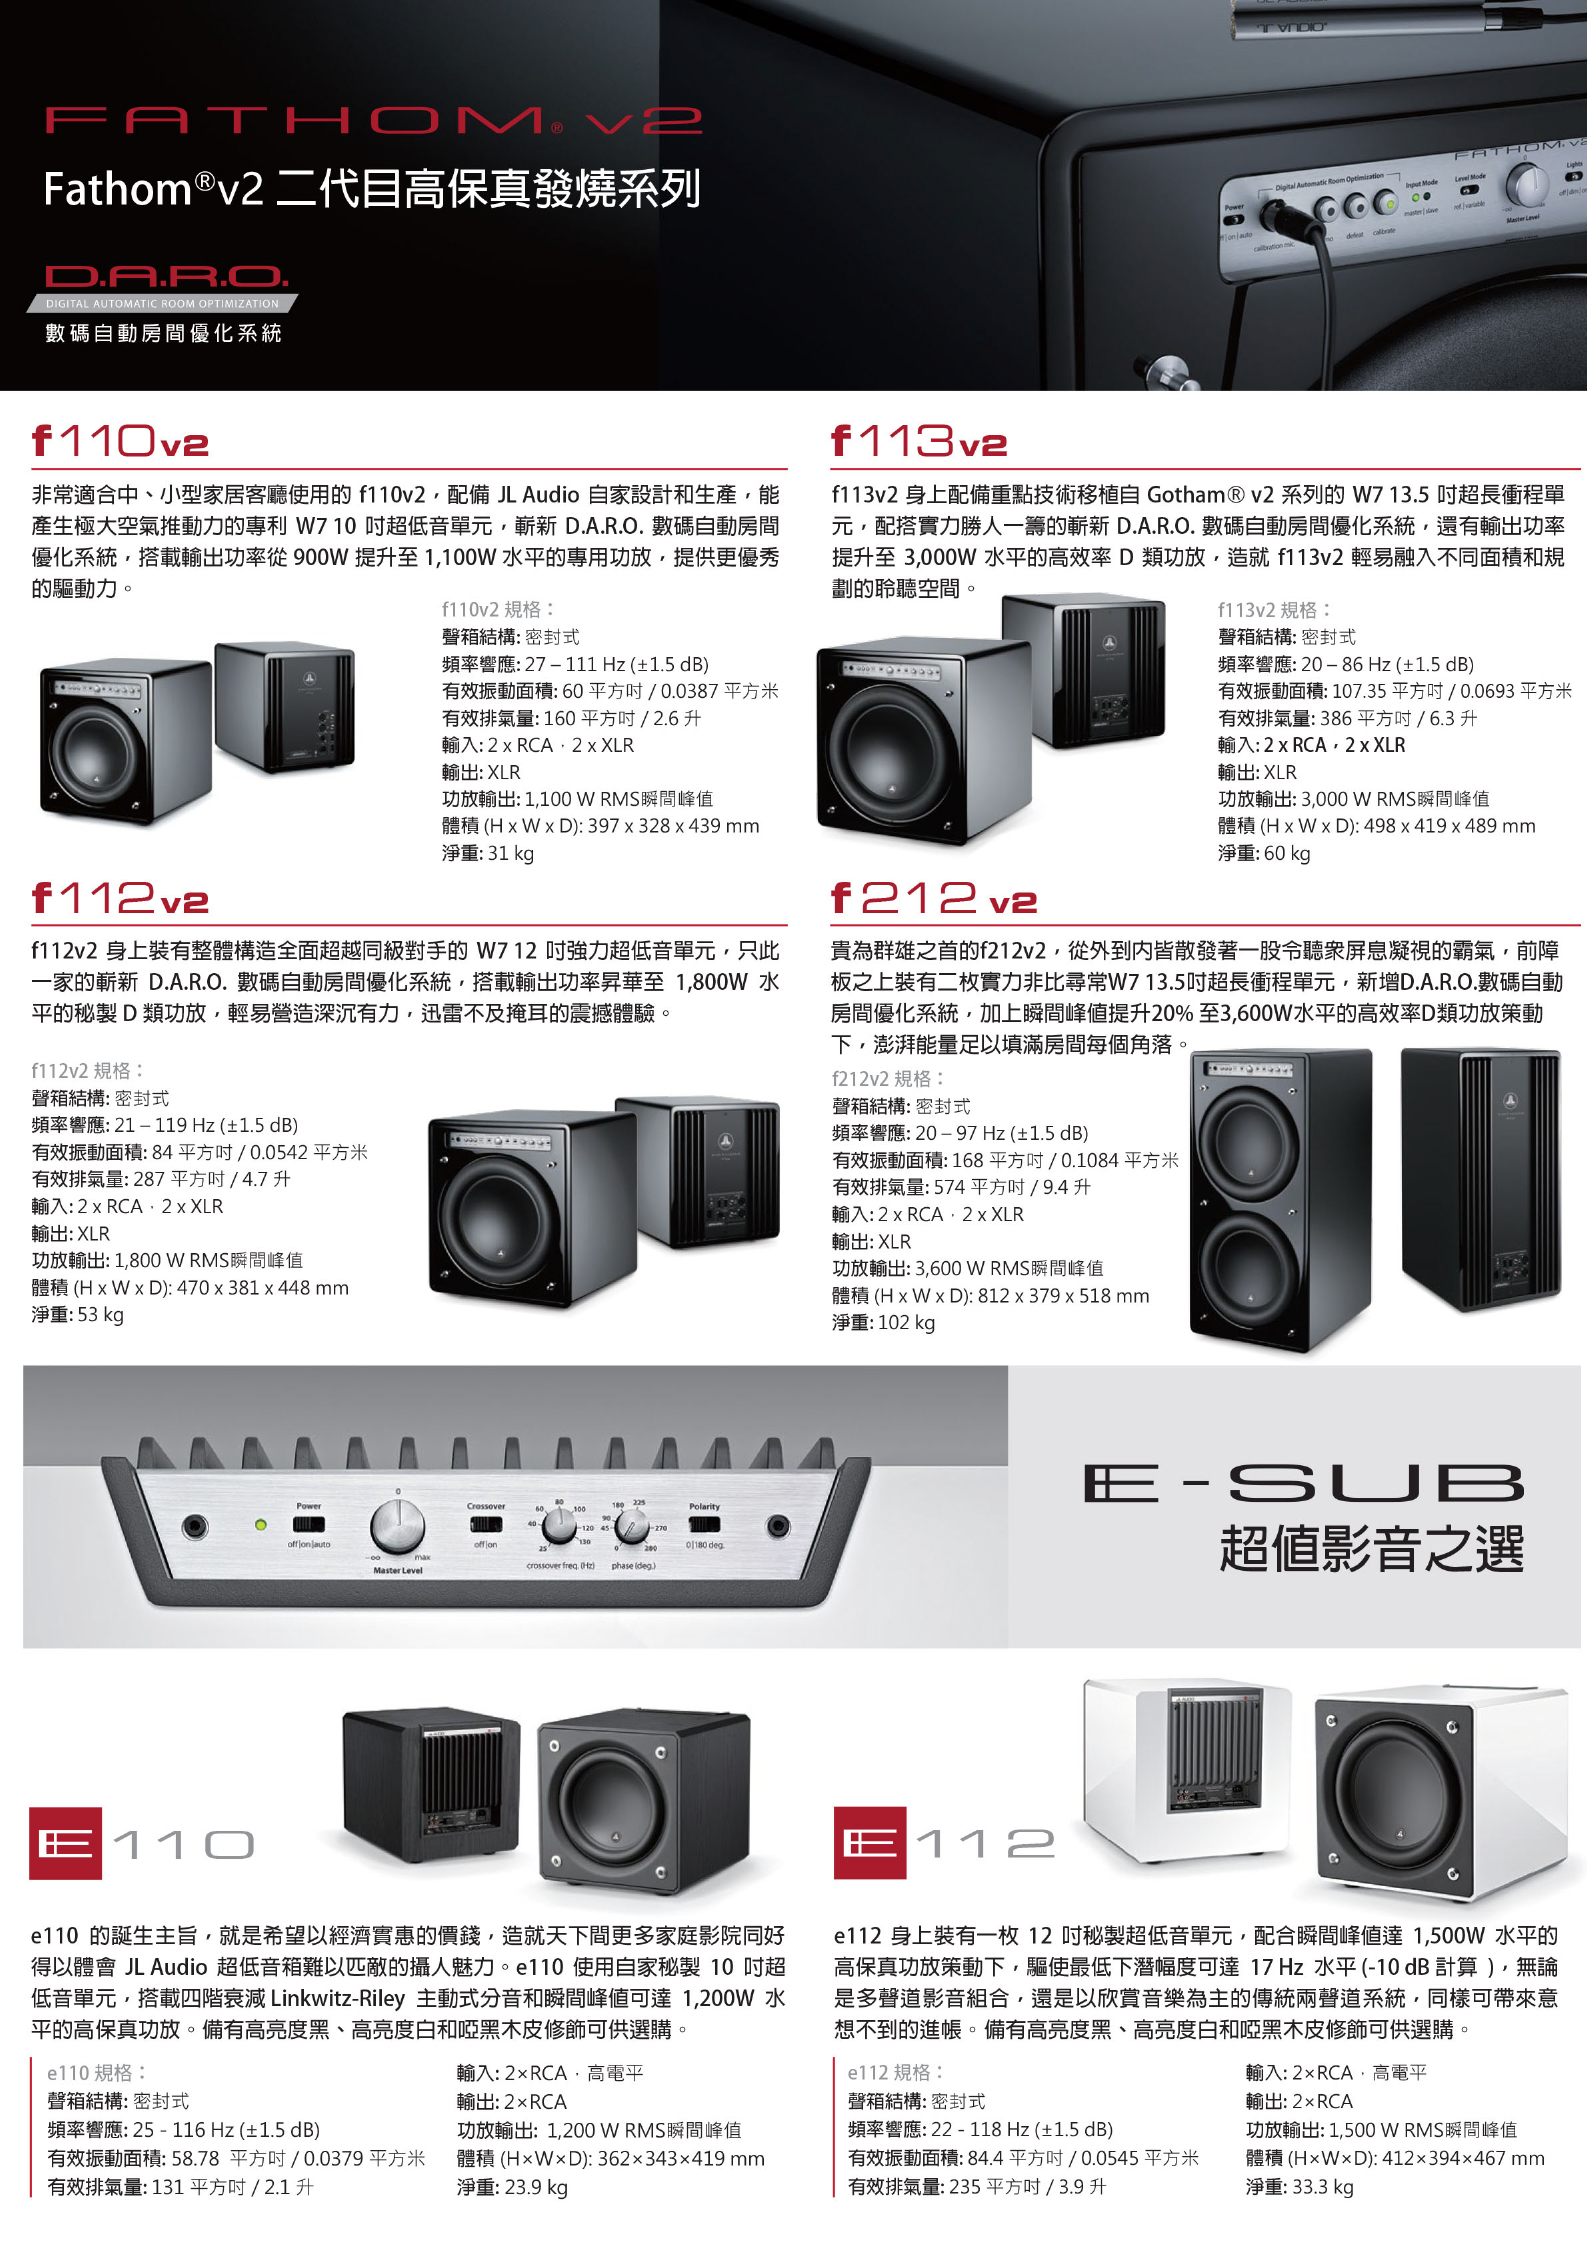 JL Audio_2016_05a-3 copy